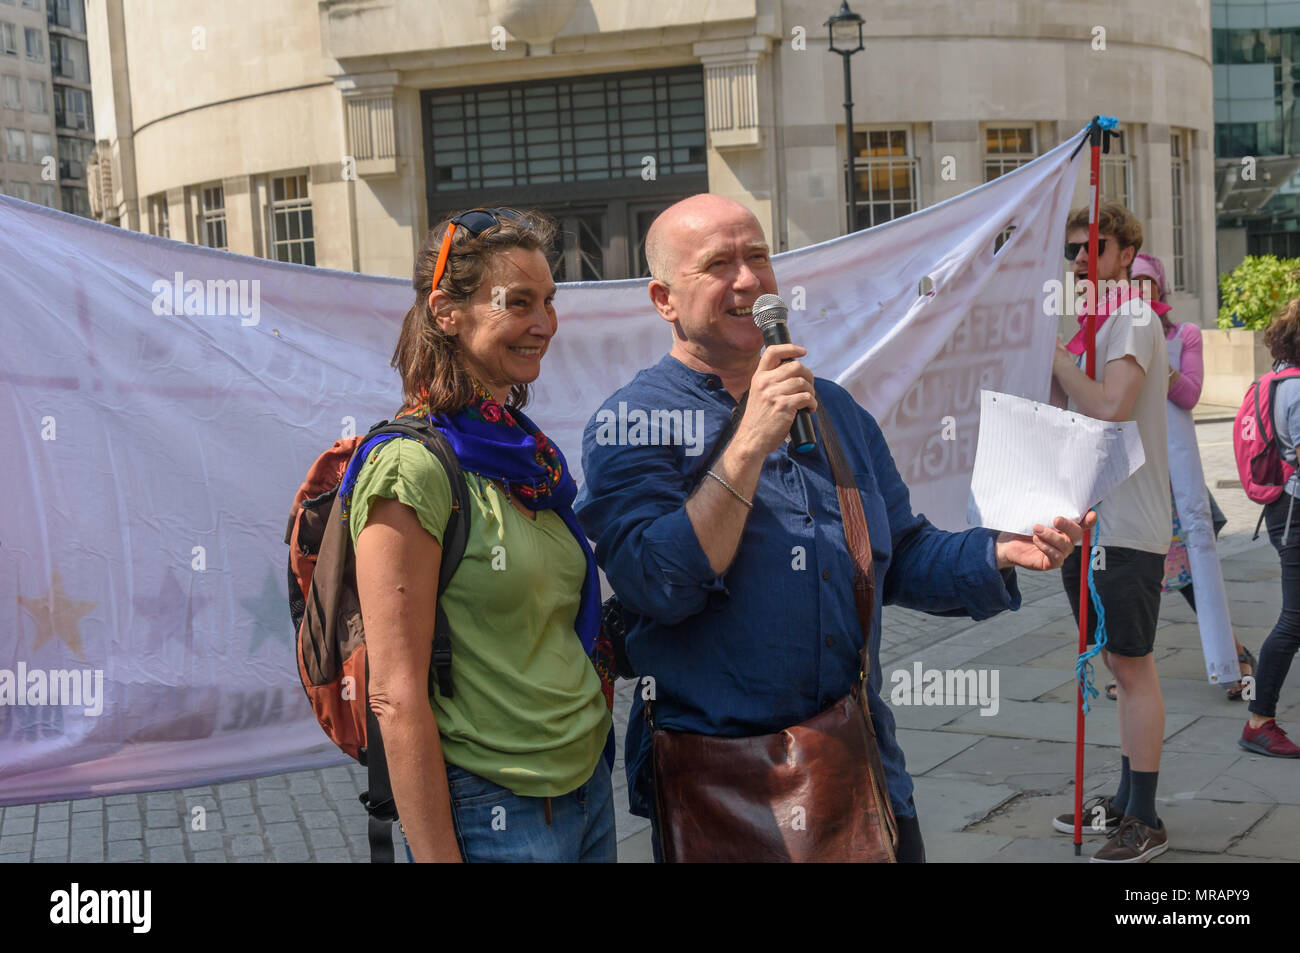 London, UK. 26th May 2018. Mark Campbell, tco-chair of the Kurdistan Solidarity Campaign introduces the aunt of Anna Campbell, the British volunteer killed in Afrin to Kurds and supporters at the rally outside the BBC before marching to Downing St and Parliament Square to call for an end to the Turkish occupation of Afrin. Speakers included the aunt of British volunteer Anna Campbell, killed defending Afrin. Credit: Peter Marshall/Alamy Live News - Stock Image